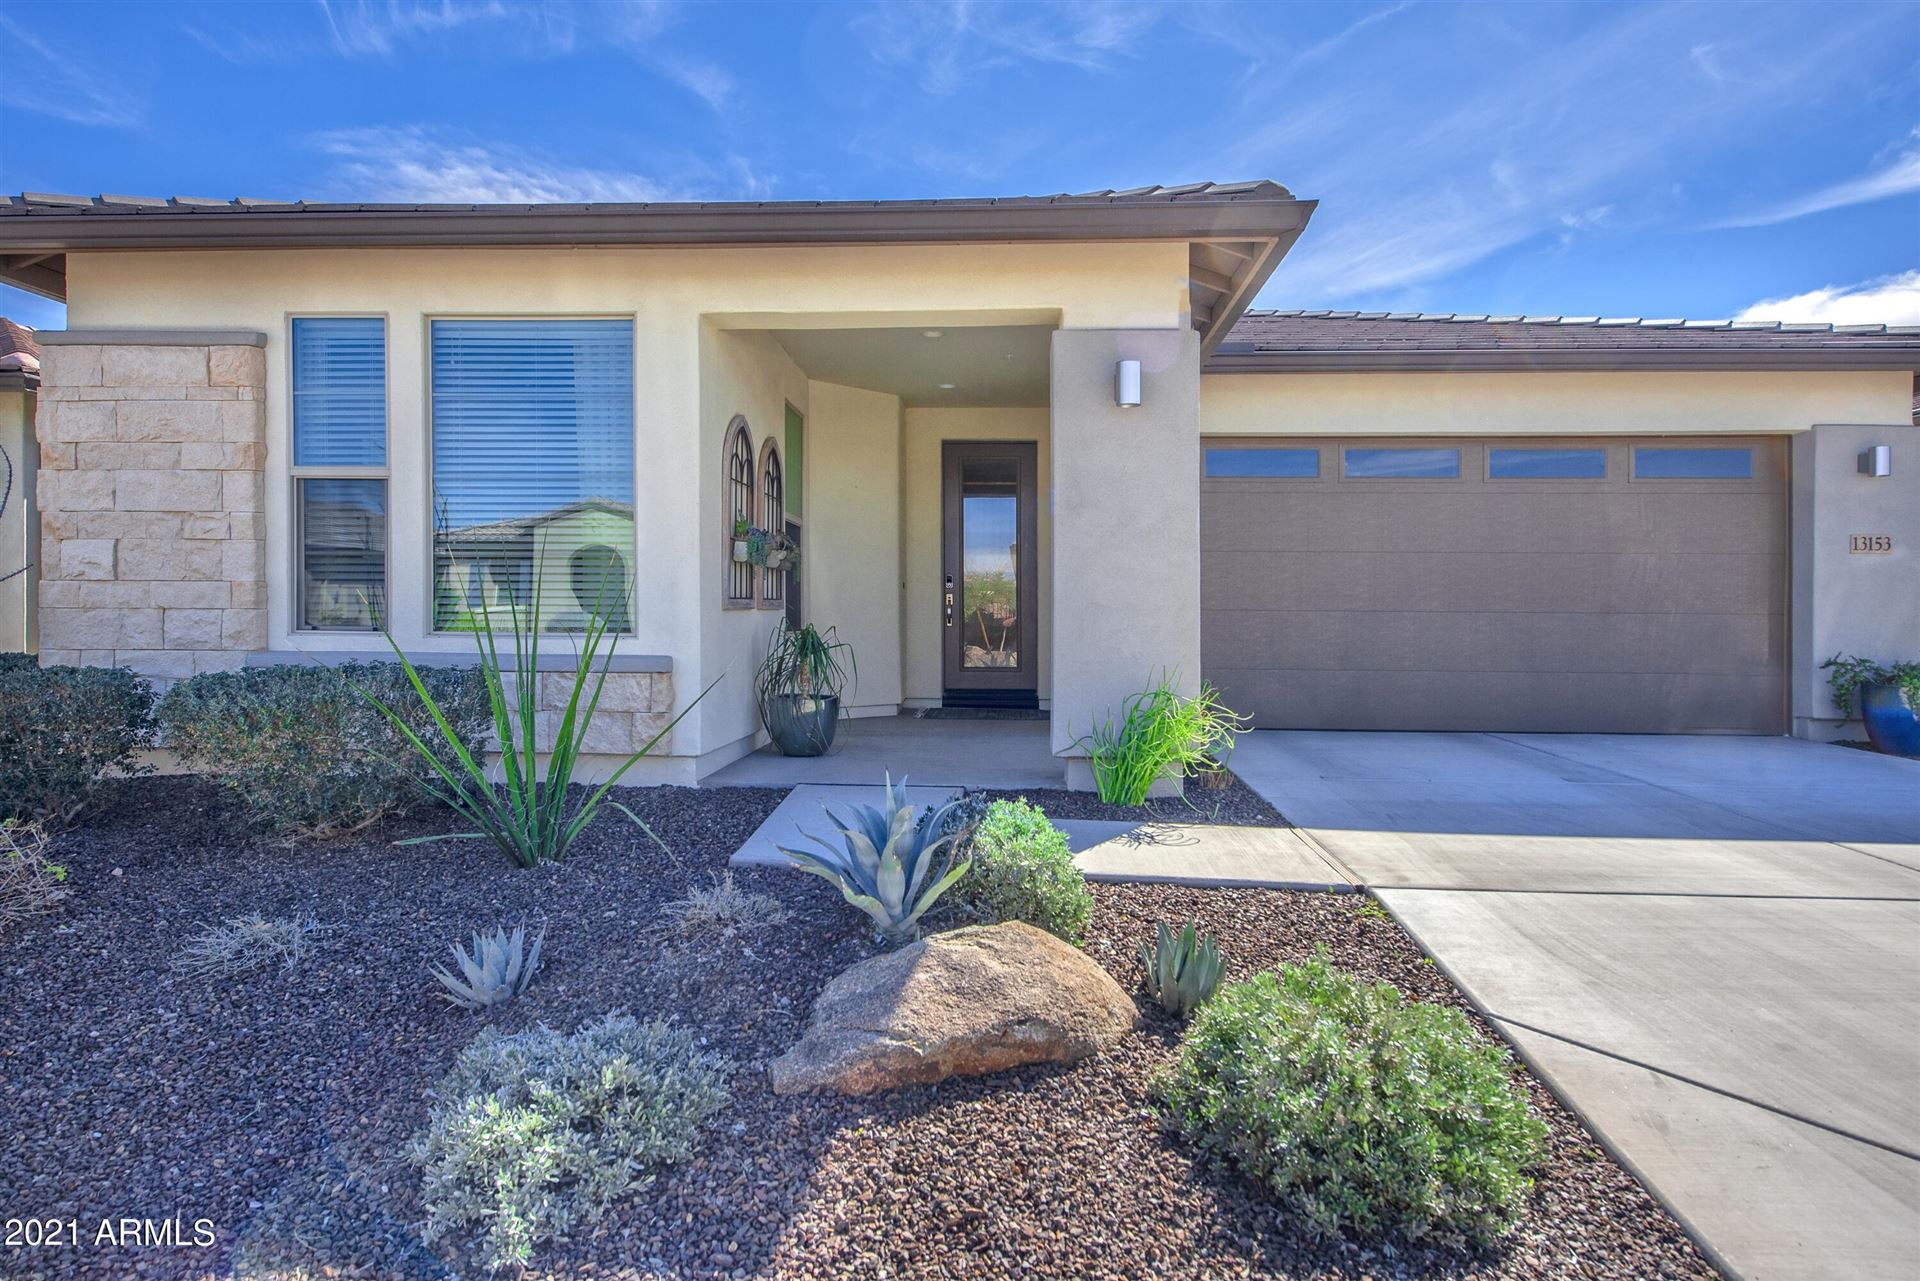 Photo of 13153 W NADINE Way, Peoria, AZ 85383 (MLS # 6200775)